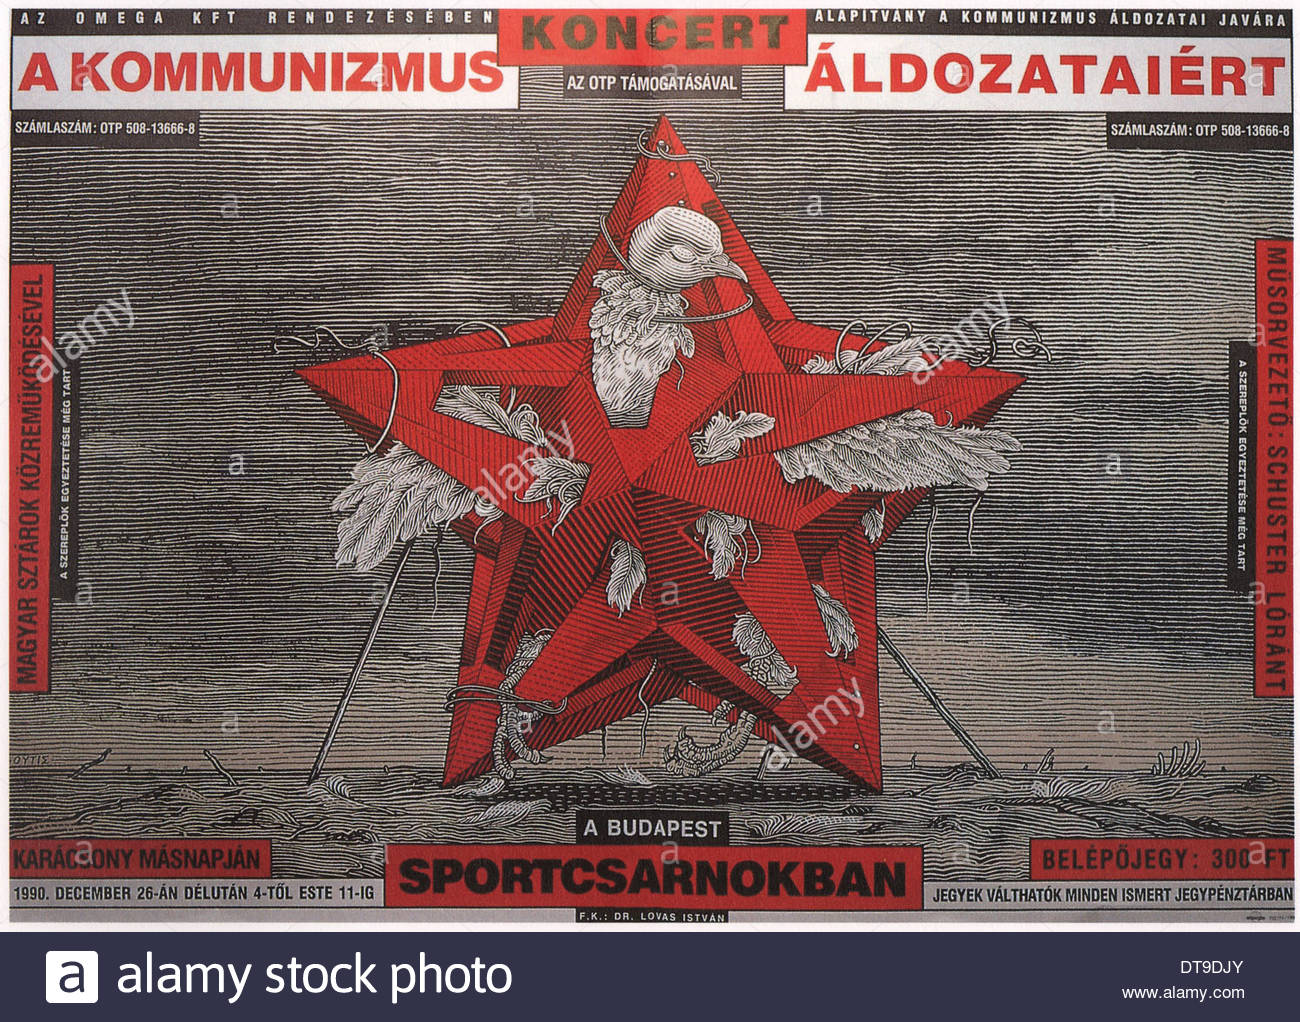 Concert for the victims of communism, 1990. Artist: Orosz, István (*1951) - Stock Image